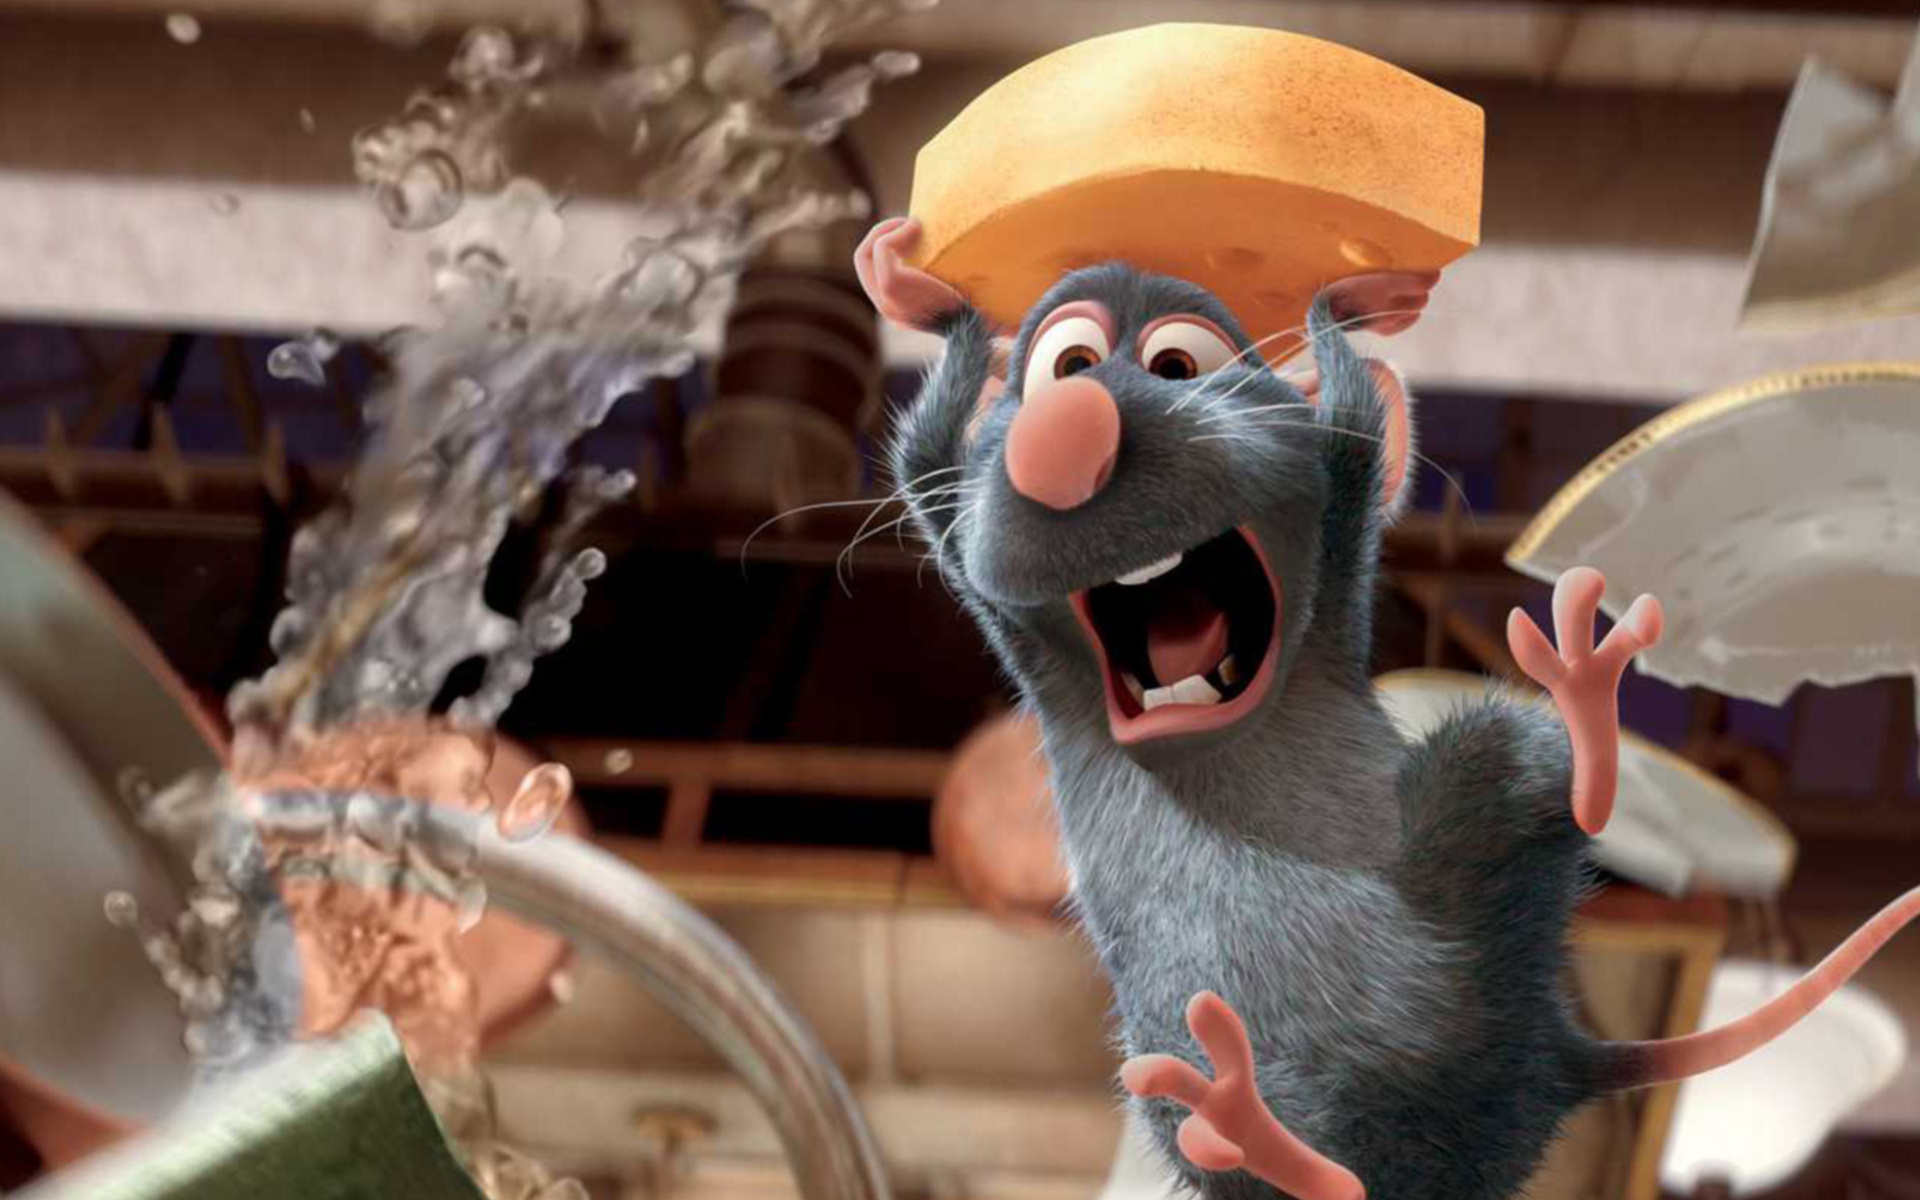 Ratatouille Wallpapers, Stunning Backgrounds | Ratatouille HD ...